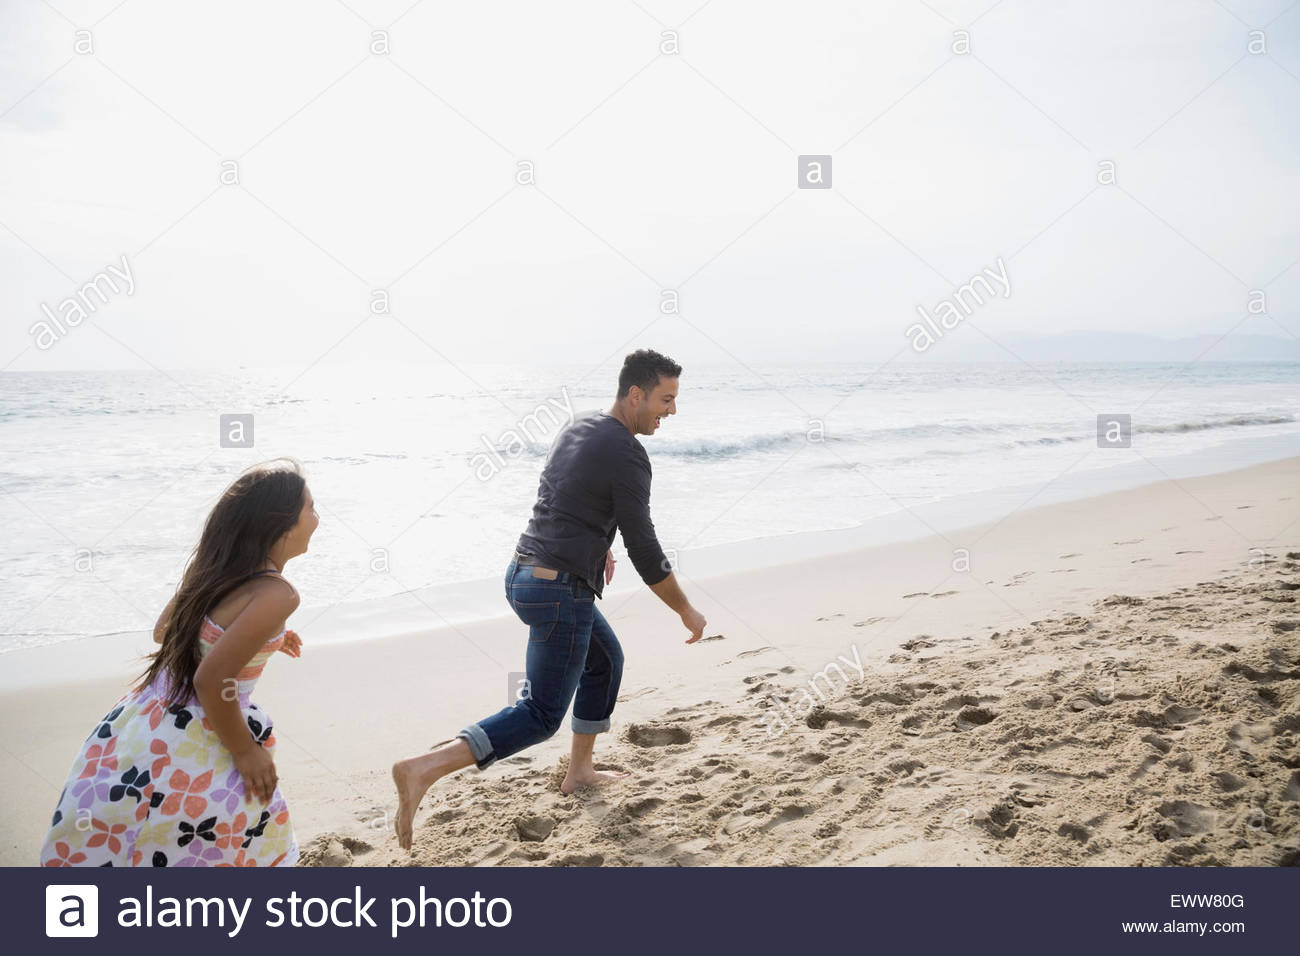 Daughter running and chasing father on sunny beach - Stock Image